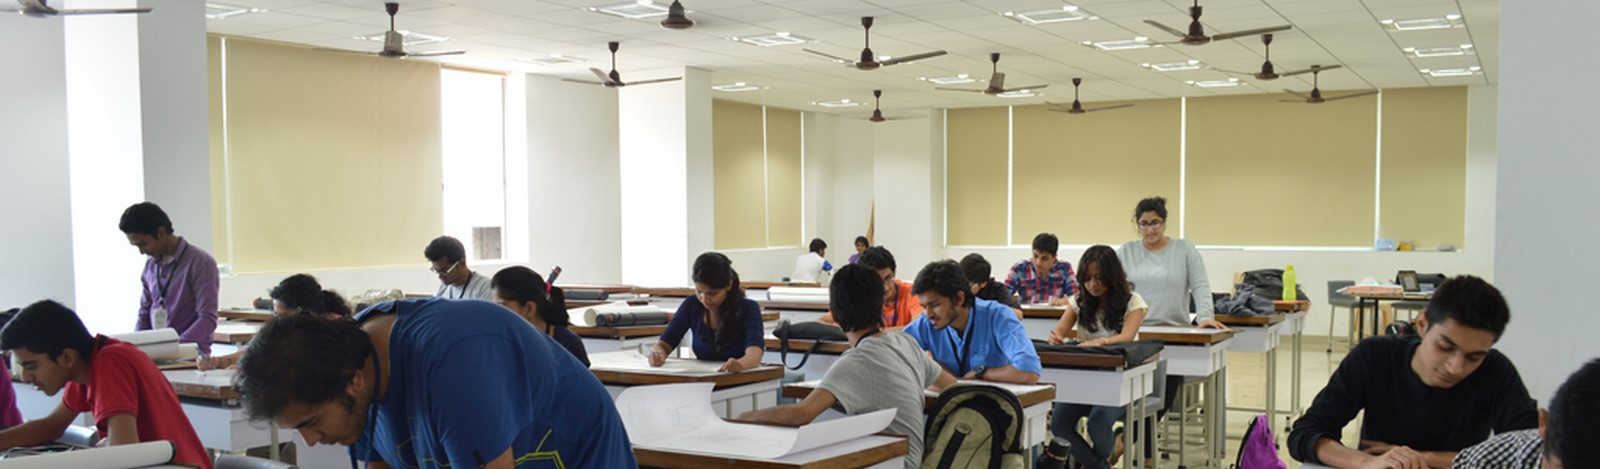 Campus life at Aditya College of Architecture Sheet5